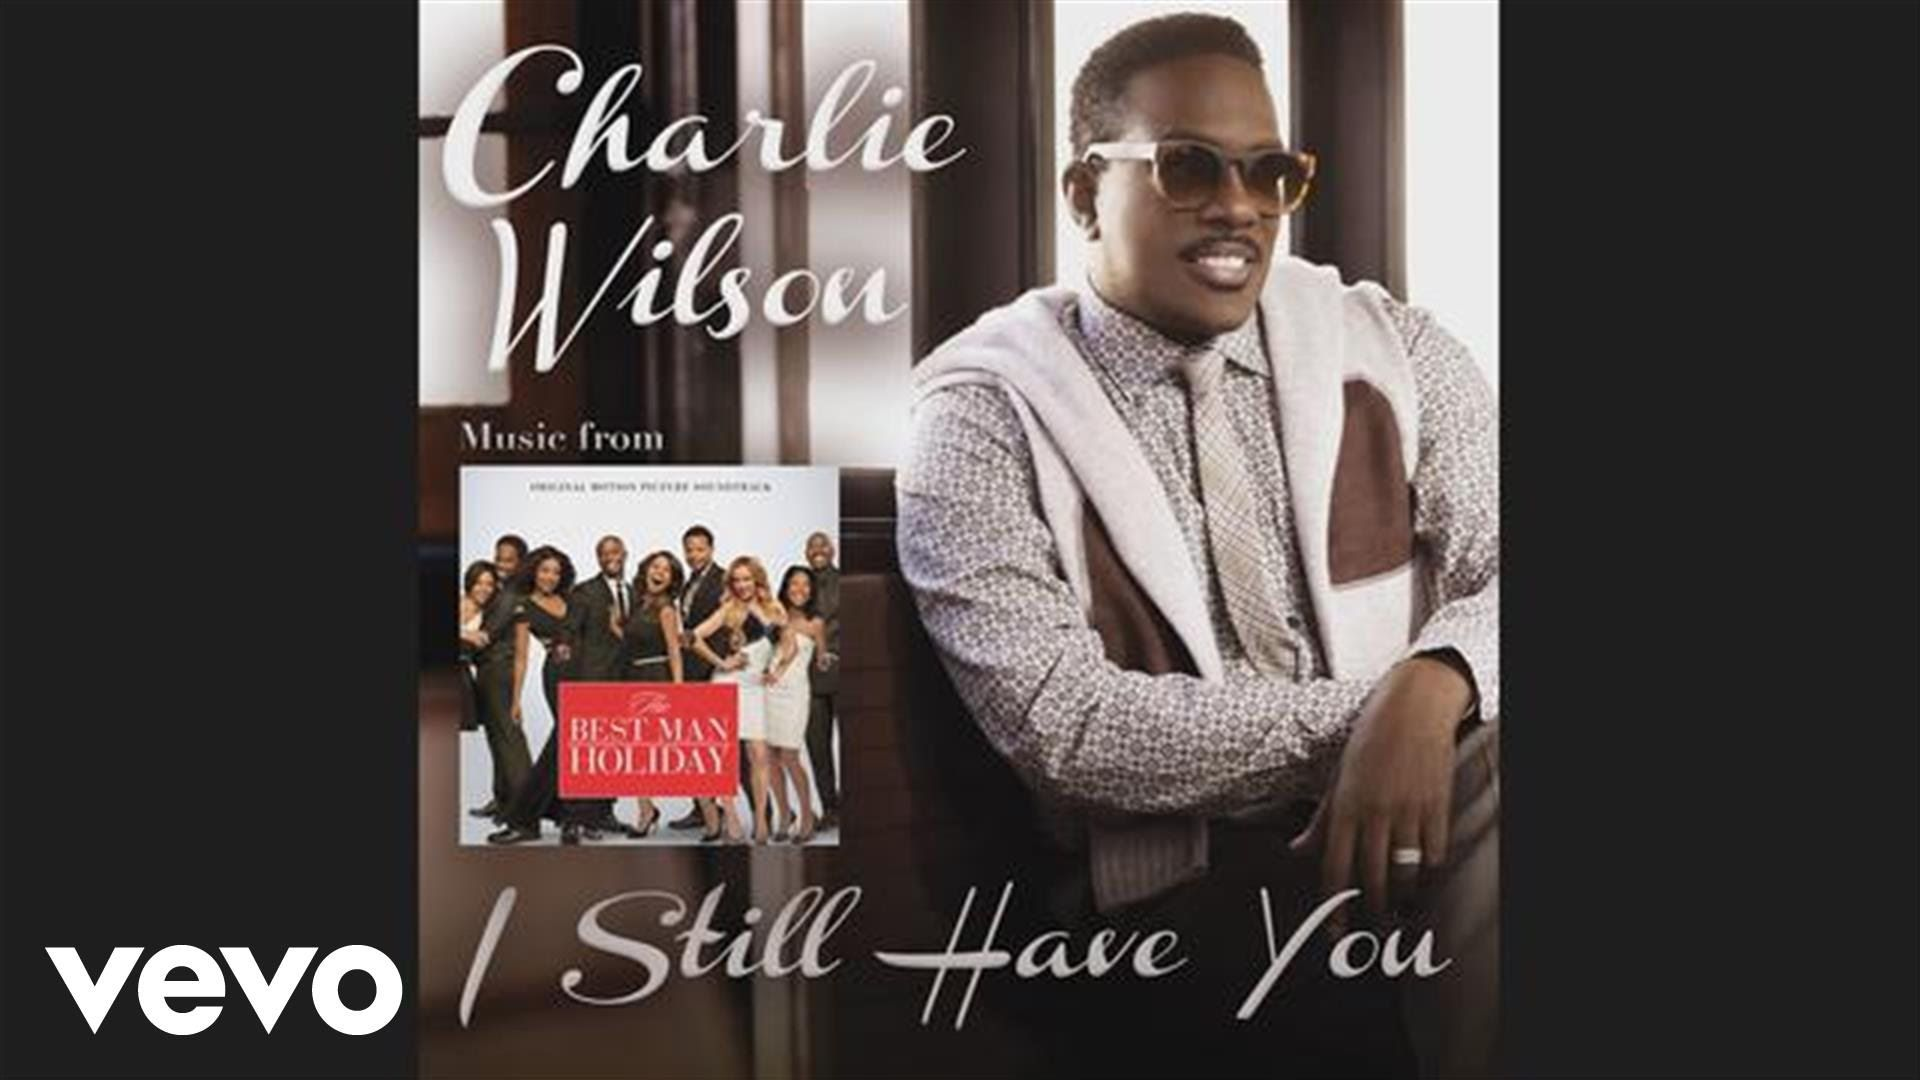 Charlie Wilson I Still Have You The Best Man Holiday Soundtrack Audio A Good Man New R B Music Sony Music Entertainment